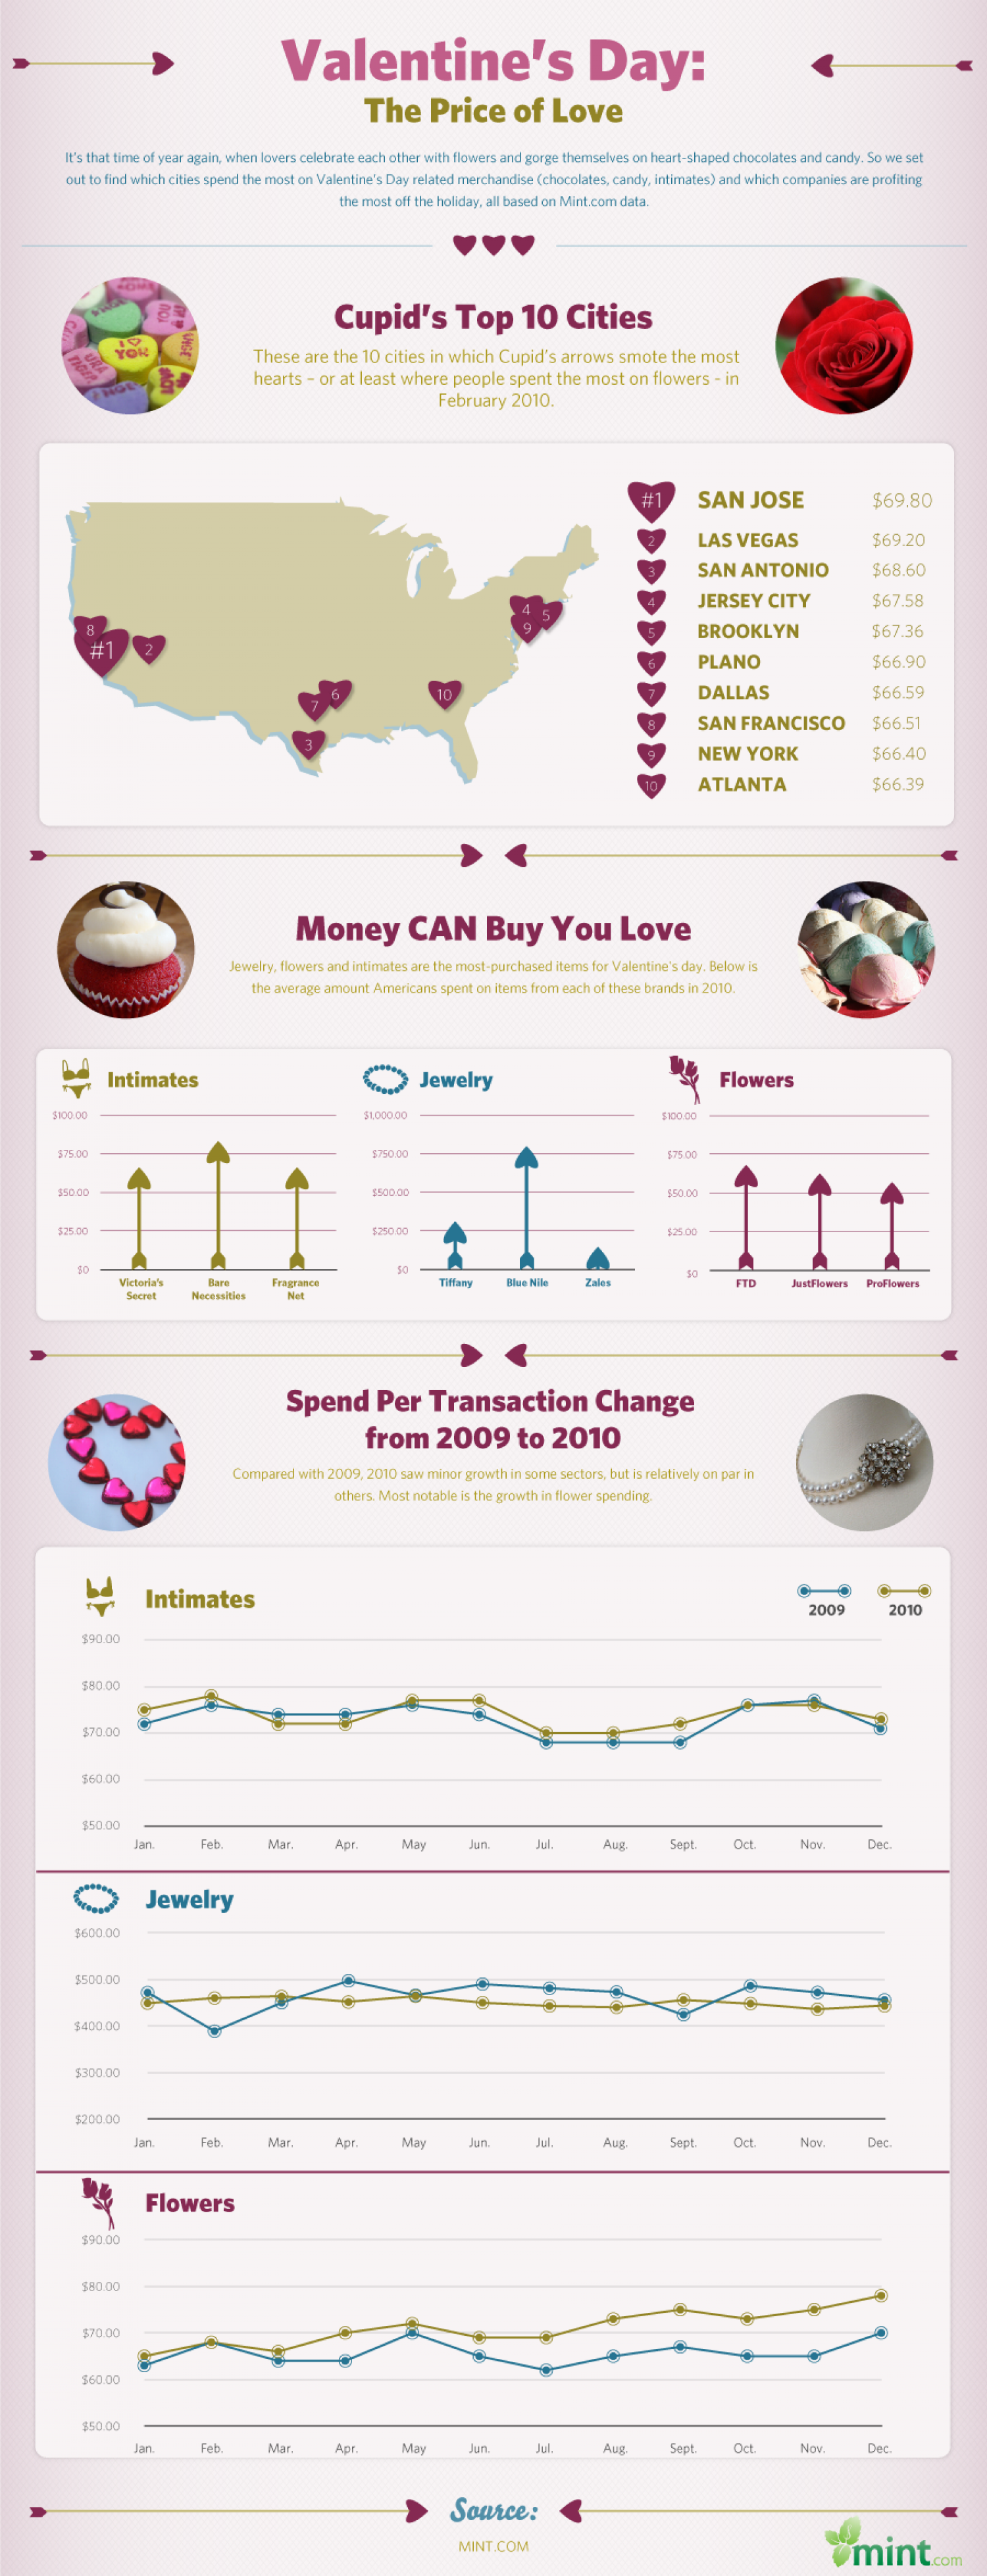 Valentine's Day: The Price of Love Infographic